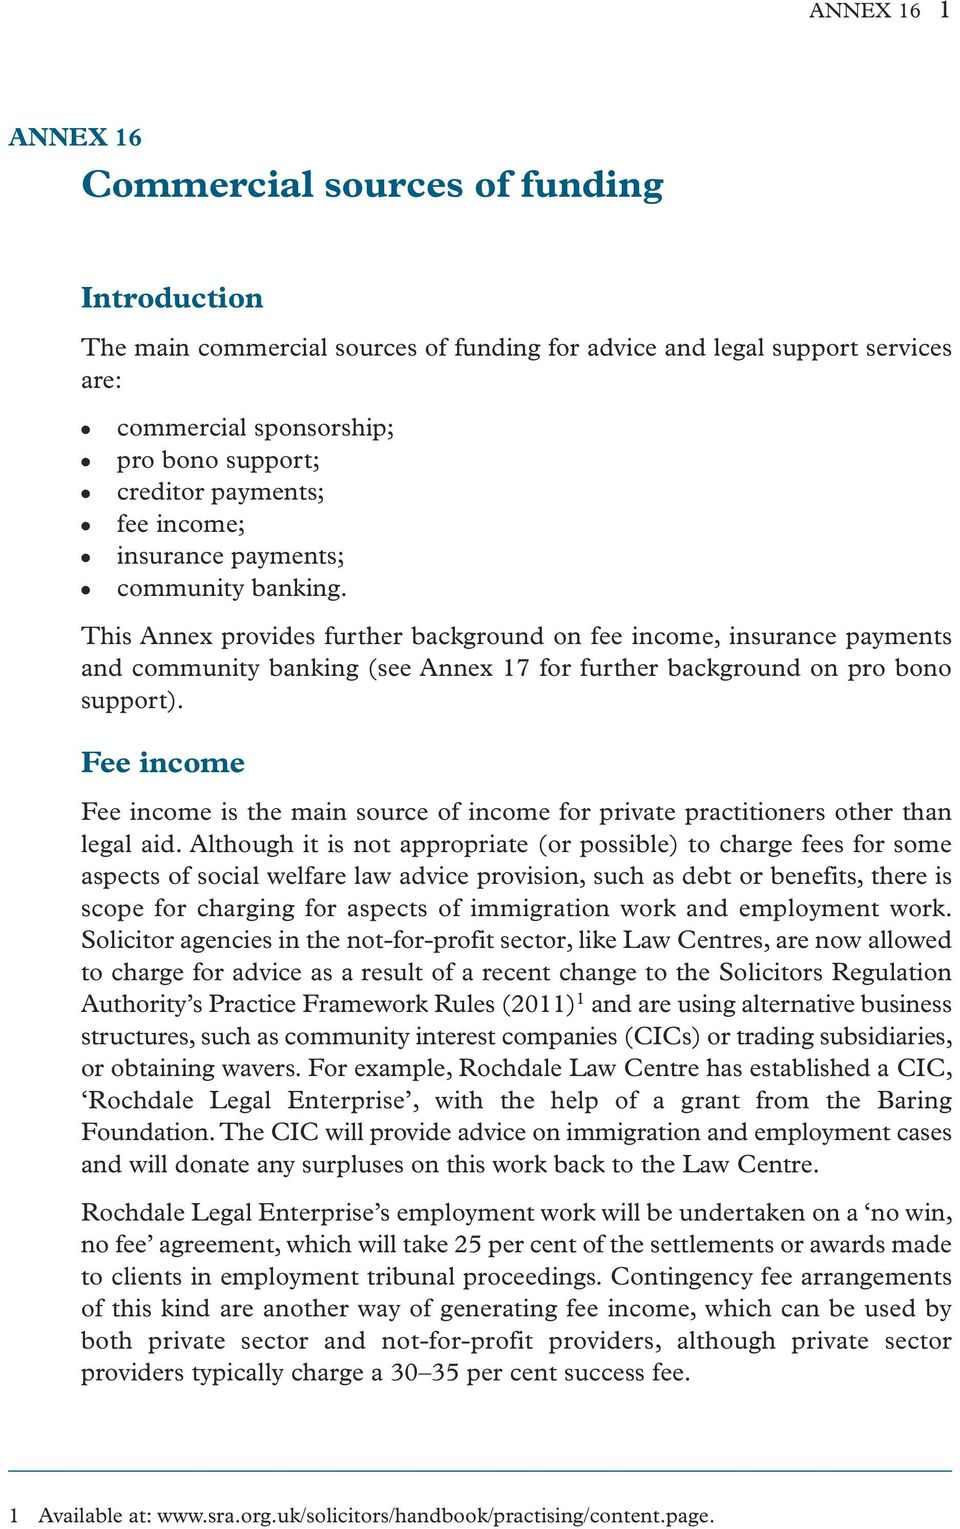 This Annex provides further background on fee income, insurance payments and community banking (see Annex 17 for further background on pro bono support).